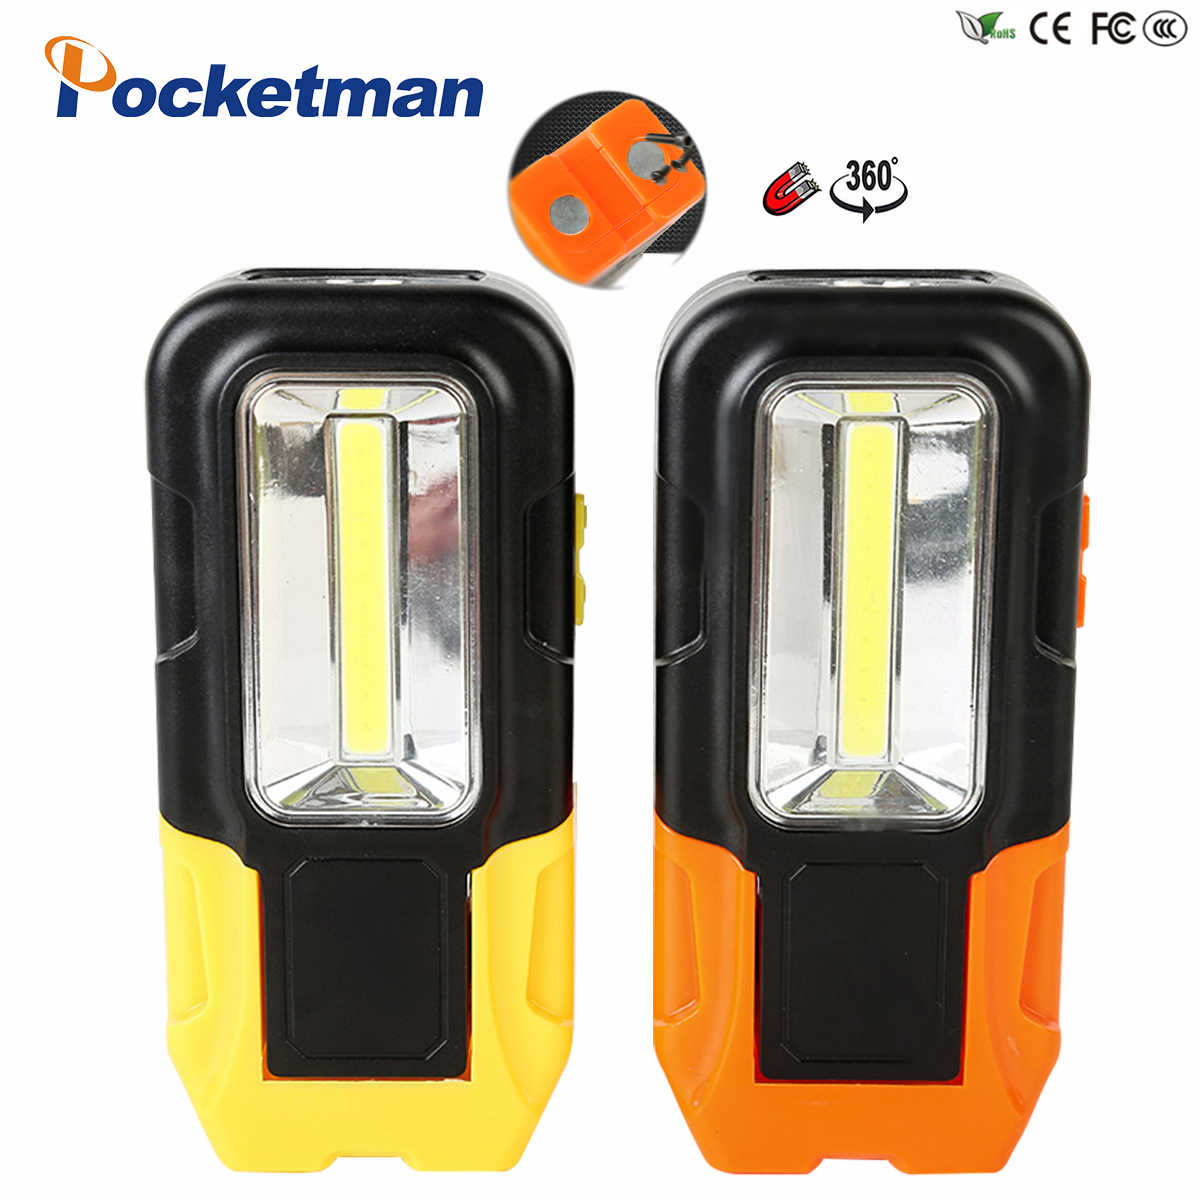 Sterke Magneet COB LED Zaklamp 3 Modes Batterij Operated Werklamp Magneet Mini Verlichting LED Zaklamp Lamp